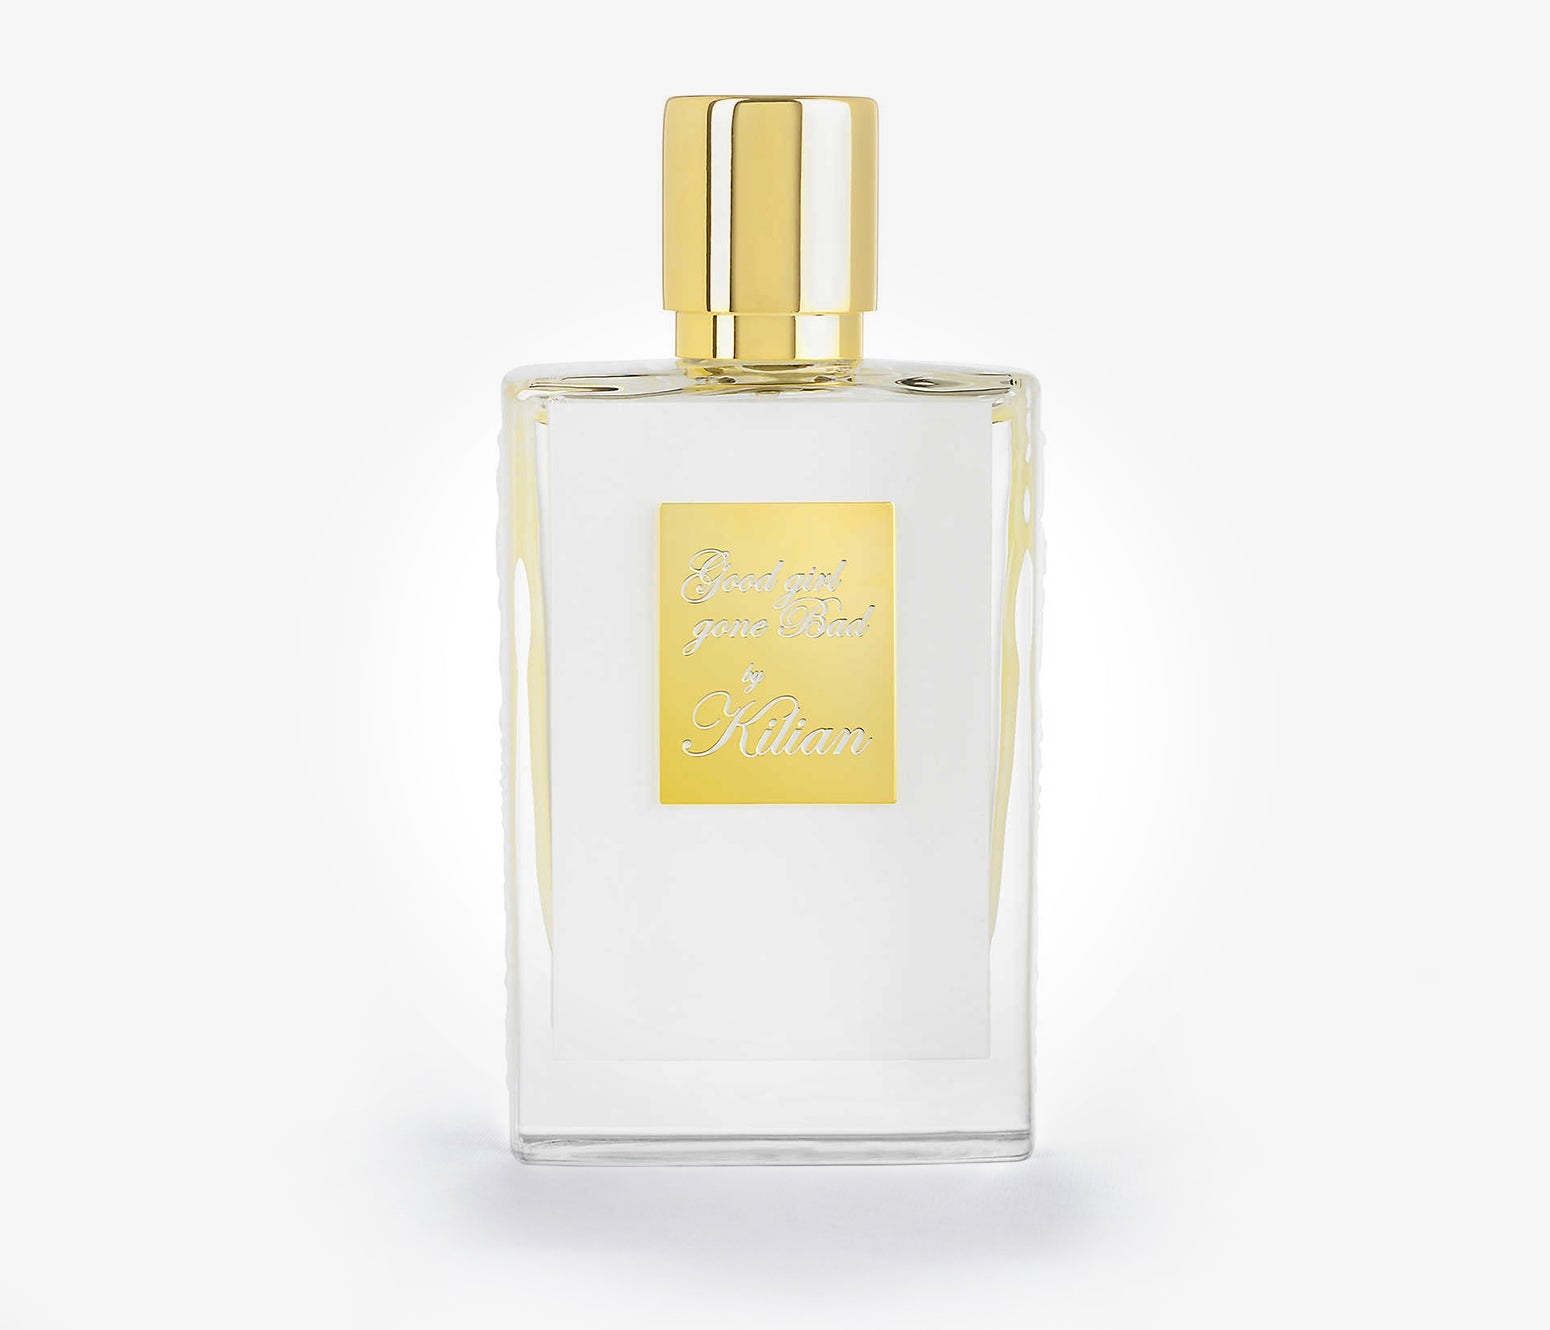 Kilian Paris - Good Girl Gone Bad by Killian - 50ml - KMF7147 - product image - Fragrance - Les Senteurs